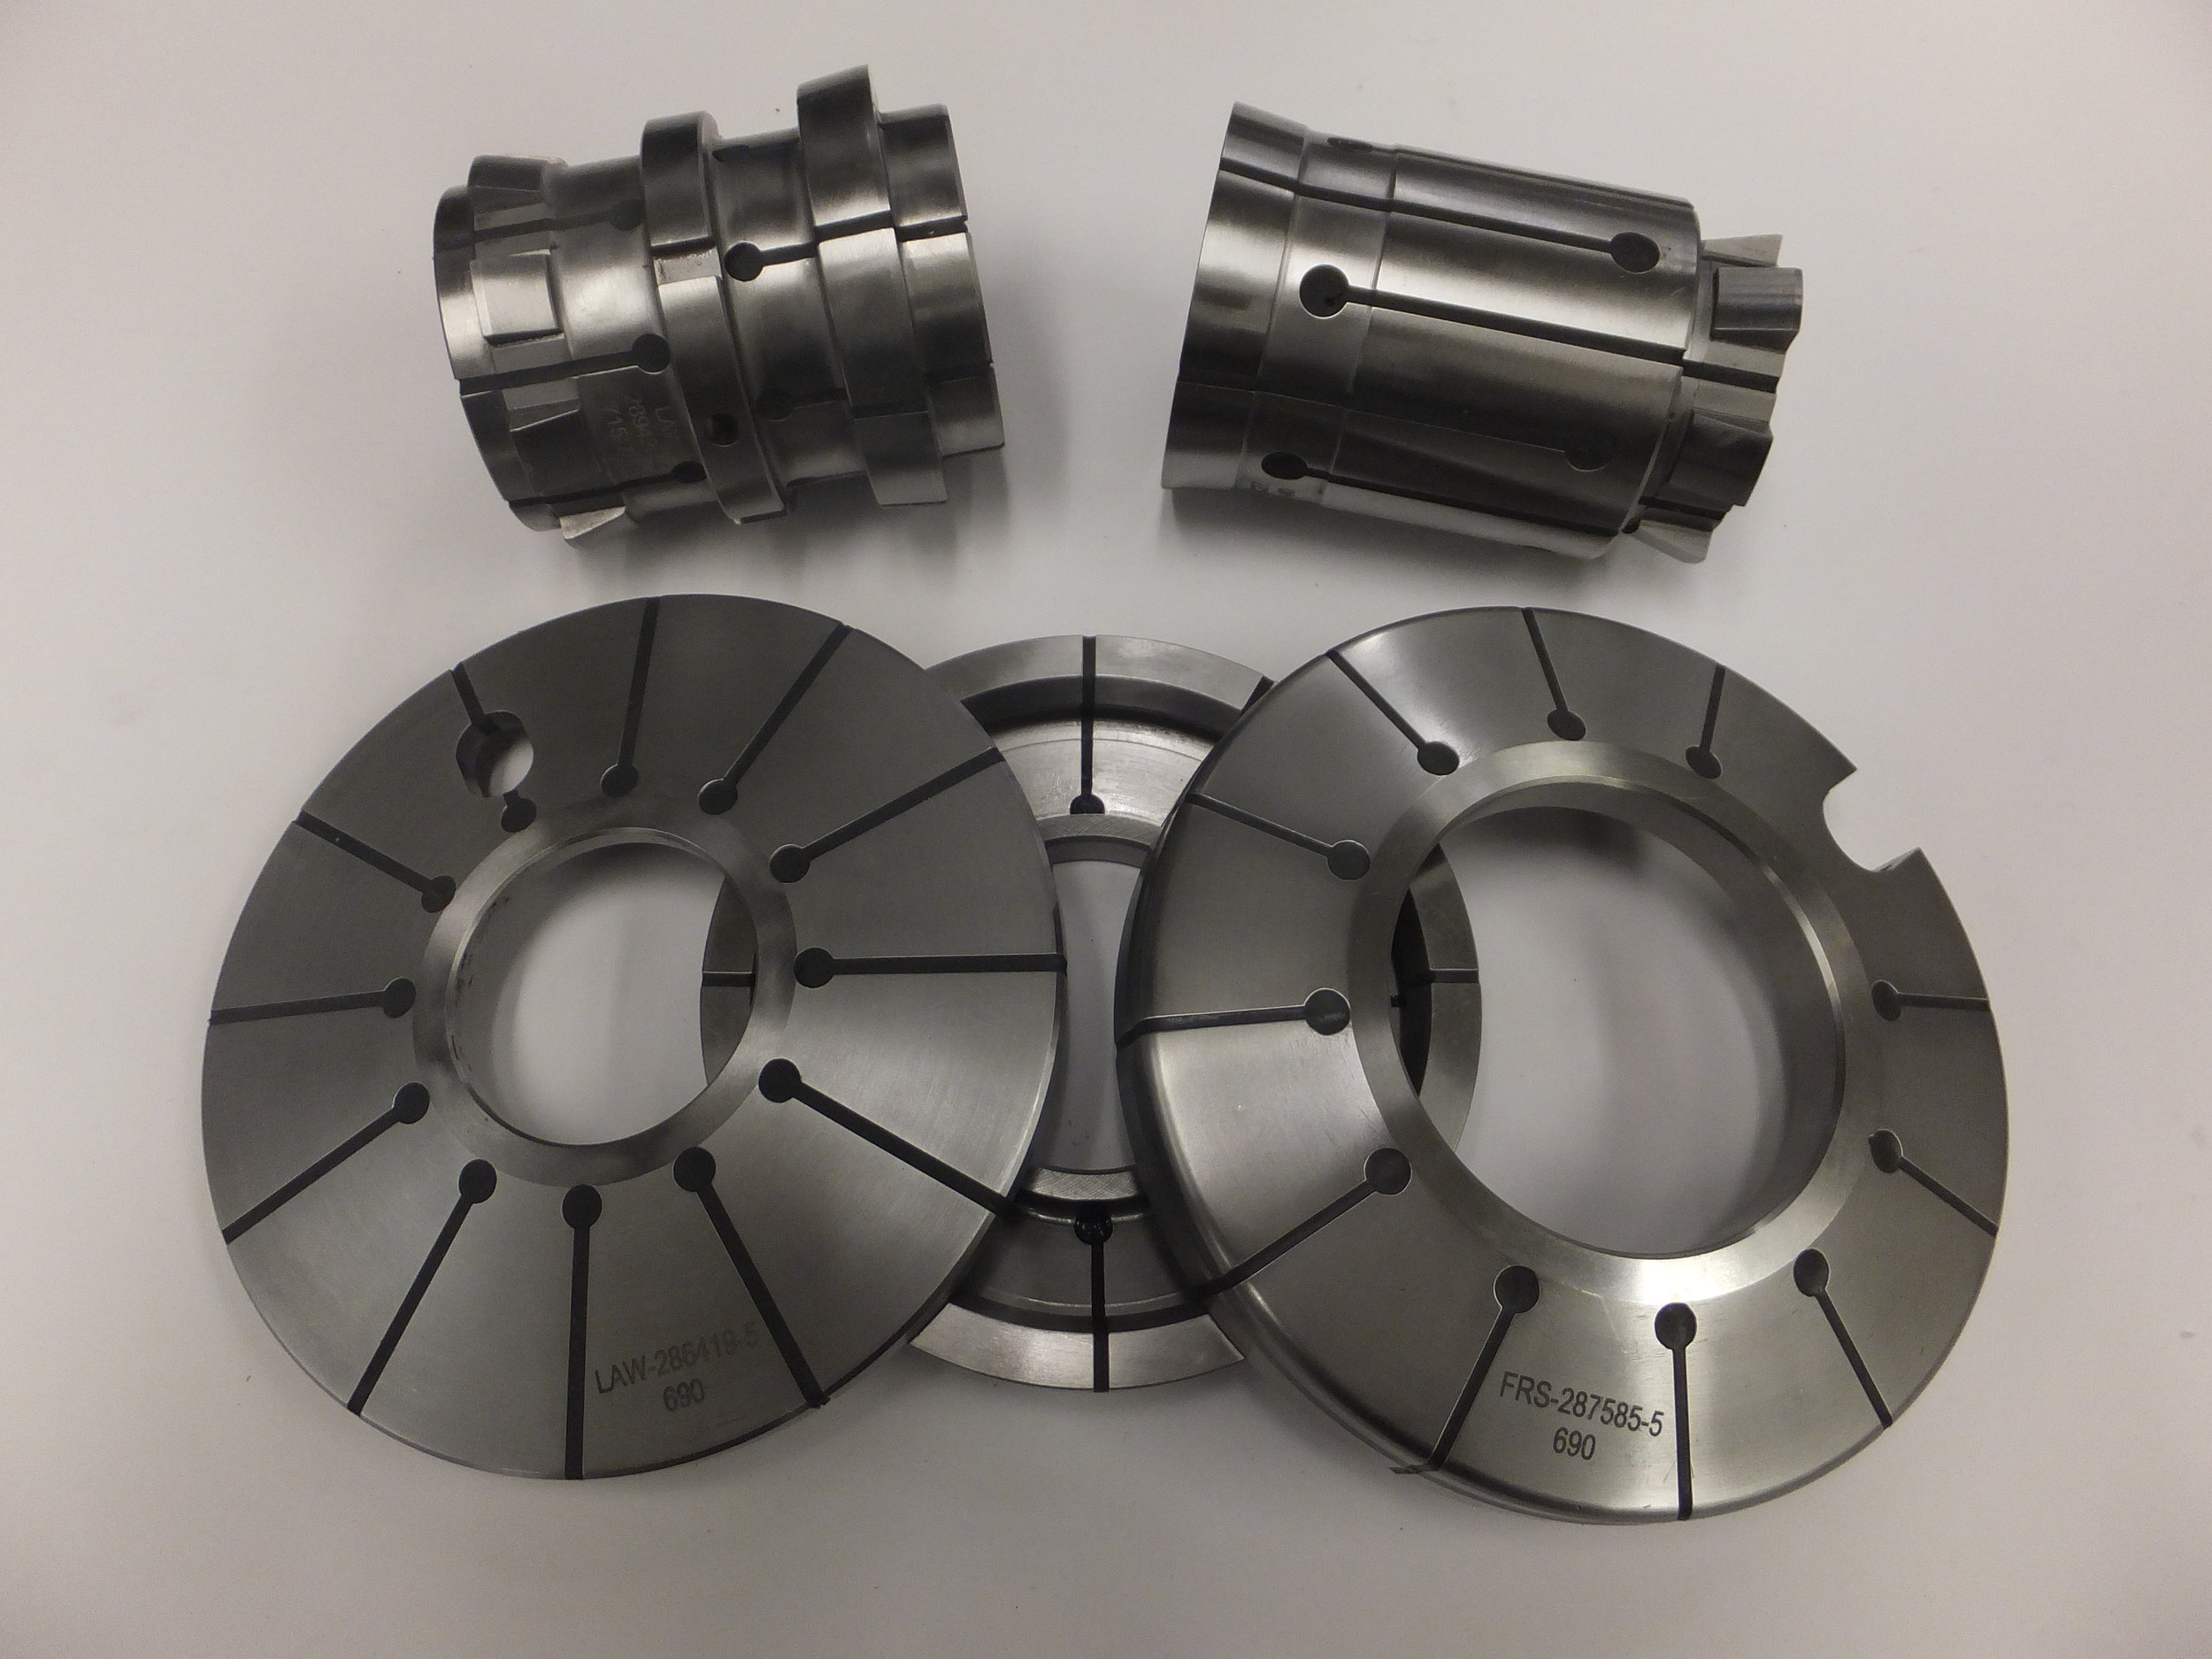 Common Bevel Pinion Double Collets and Gear Expanding Disks